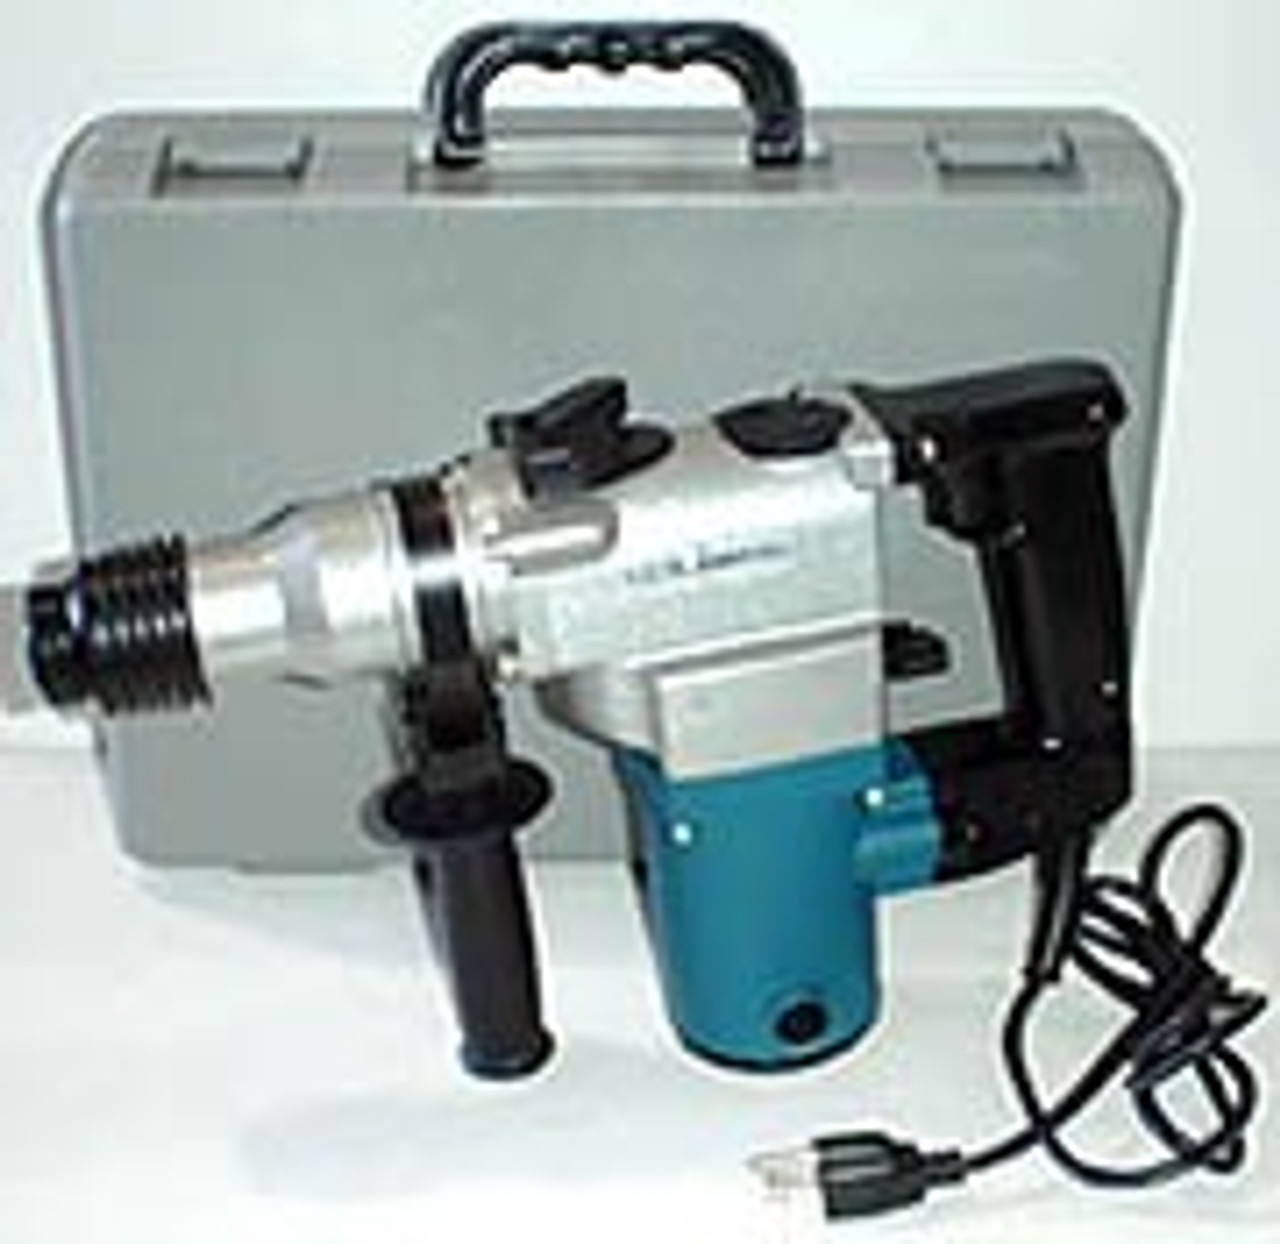 1 inch Electric Rotary / Impact / Hammer Drill w/ Case